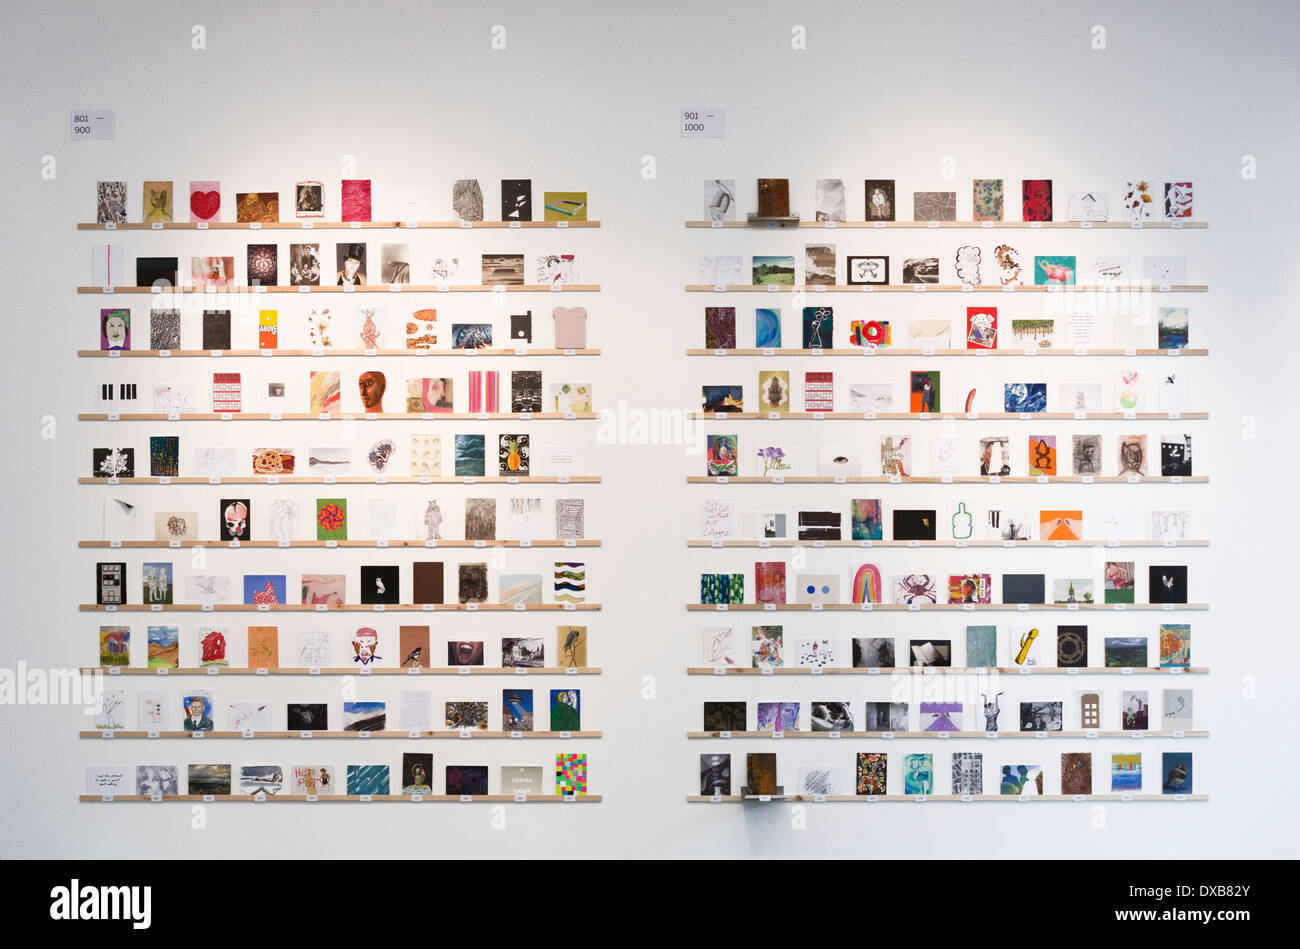 RCA Secret - Royal College of Art's fundraising event of postcard-sized artworks for the RCA Fine Art Student Award Fund - Stock Image